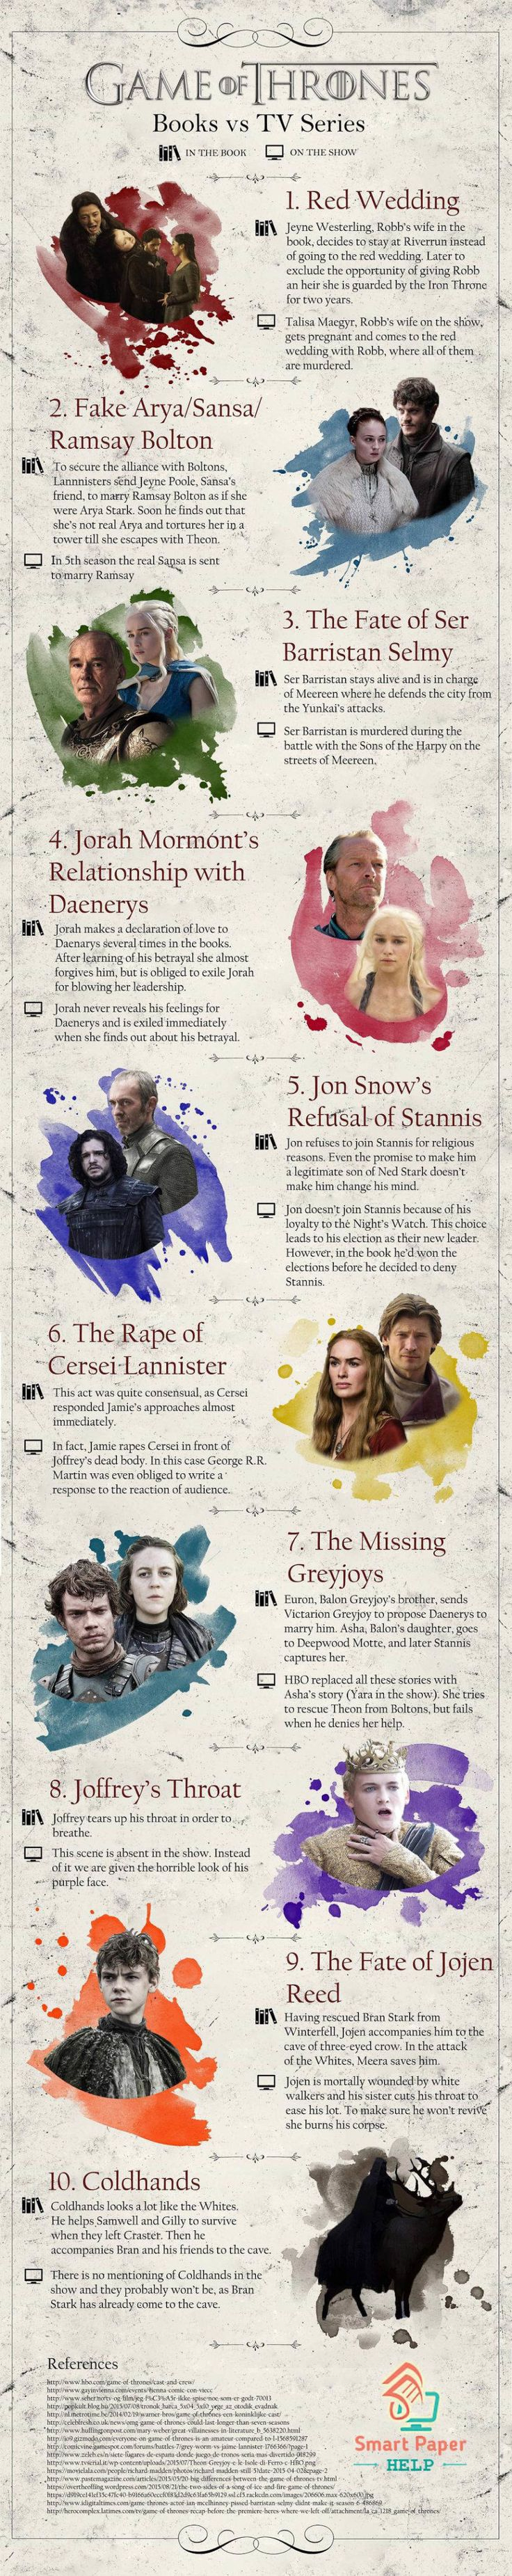 25 best ideas about jorah game of thrones on pinterest game of - 25 Best Ideas About Jorah Game Of Thrones On Pinterest Game Of A Game Of Download